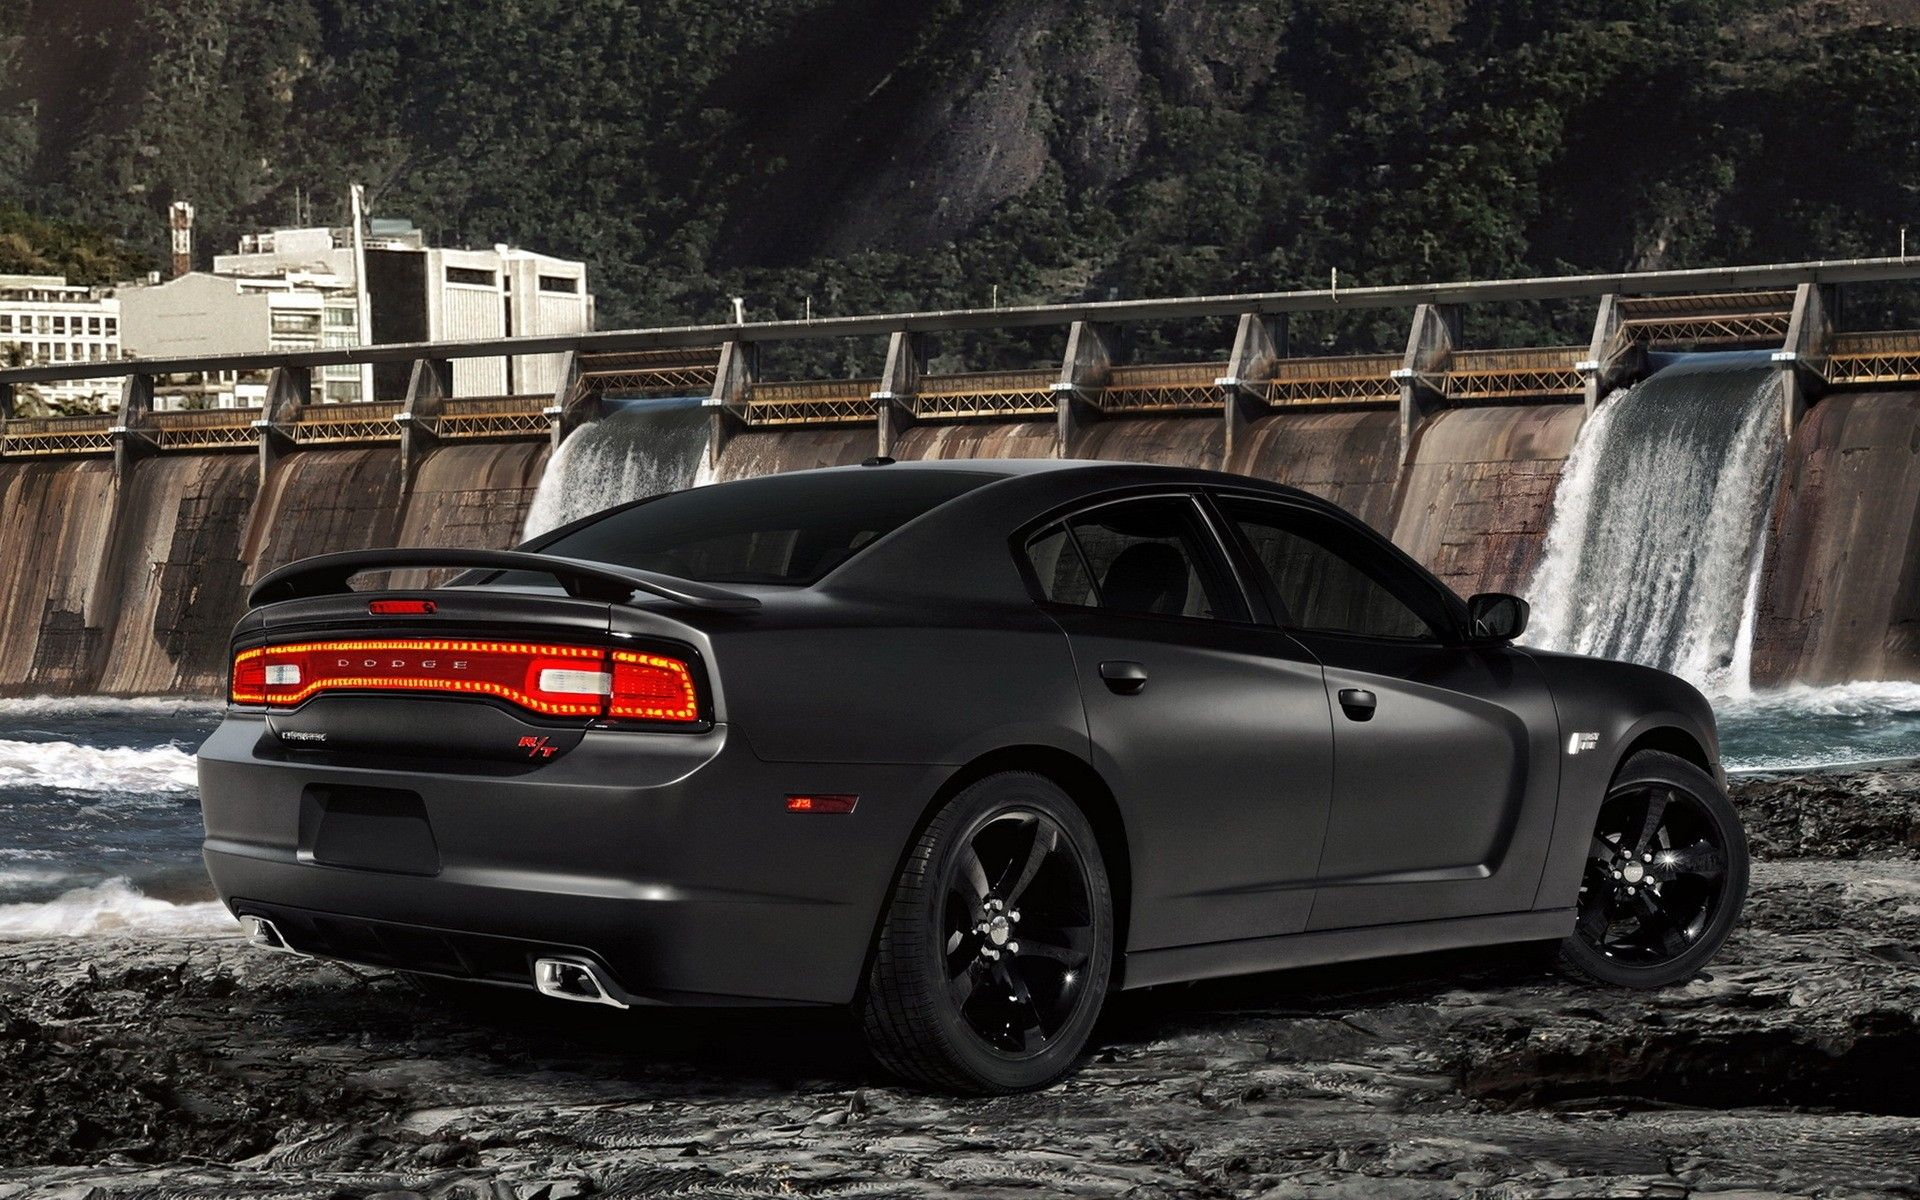 Charger RT Matte Black | Cars | Pinterest | Charger rt ...